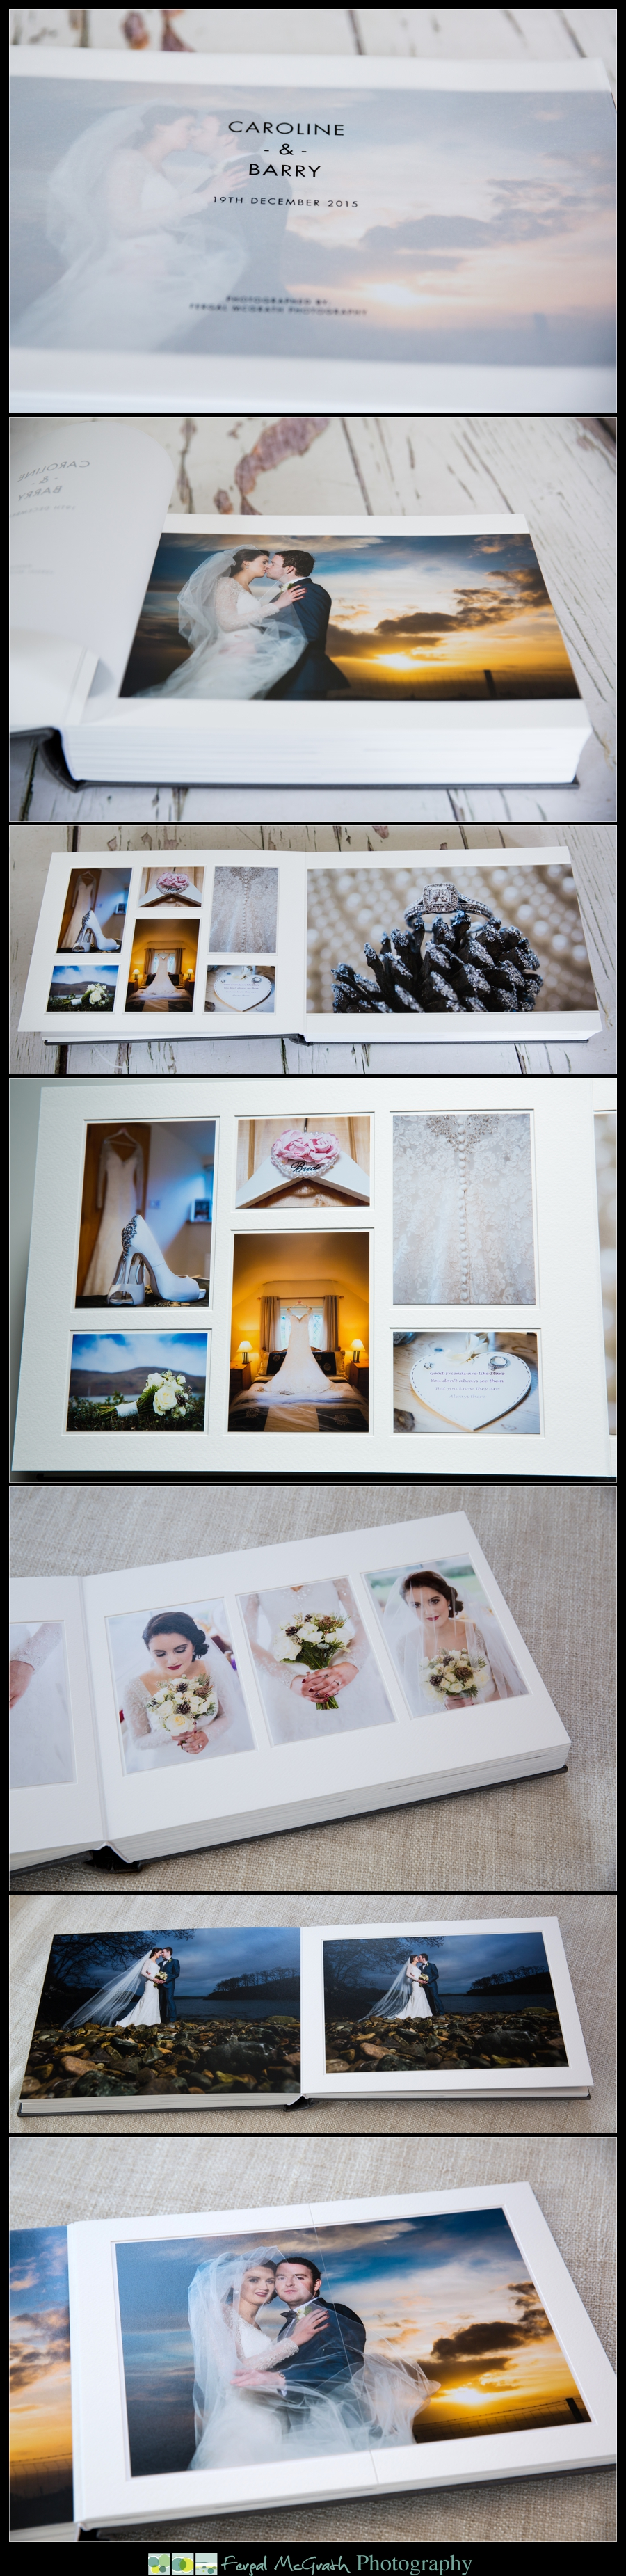 Queensberry Wedding Albums Donegal and Sligo Wedding Photographer